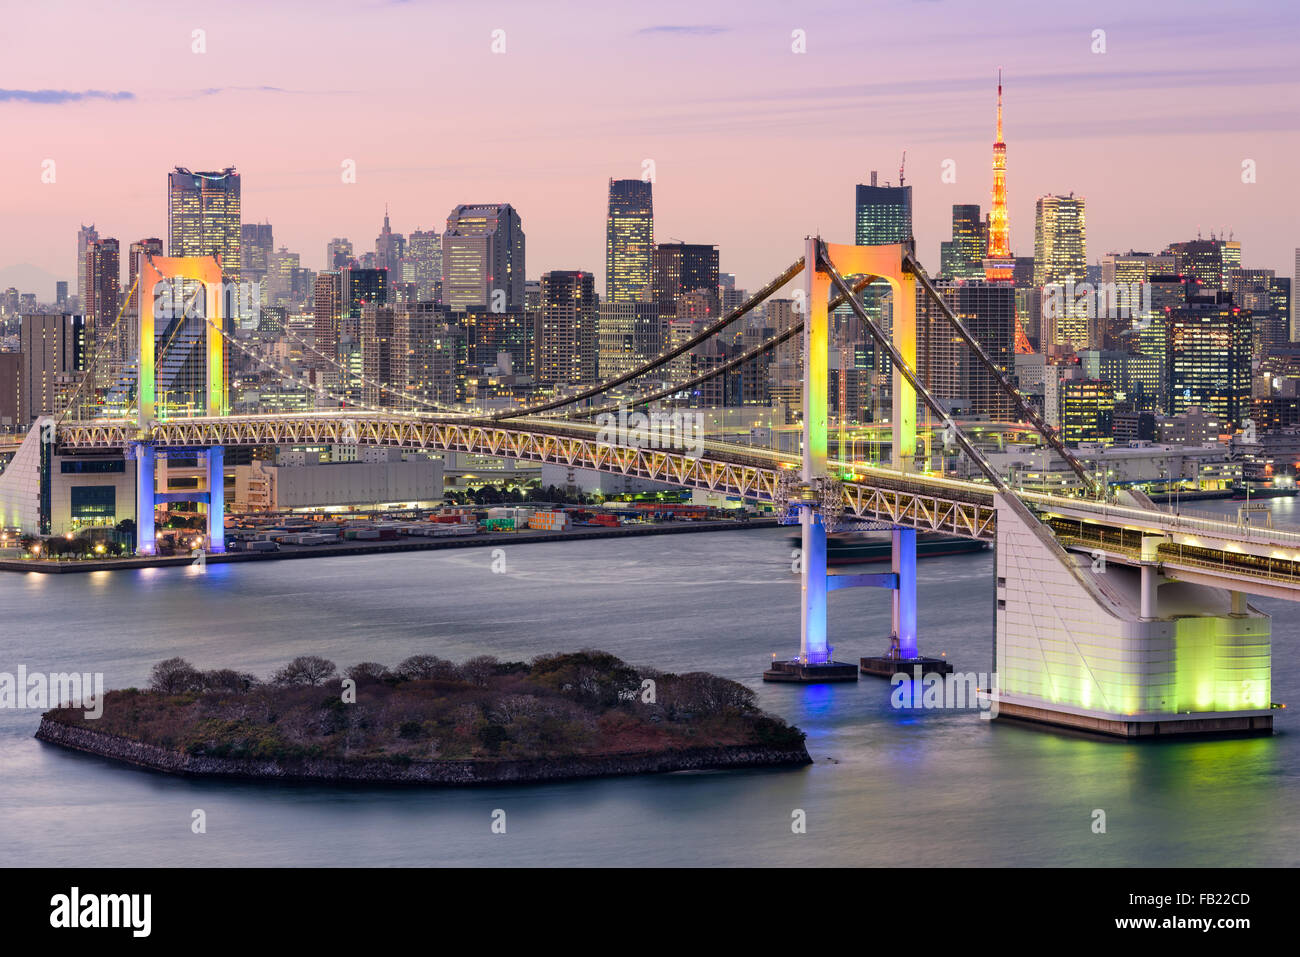 Tokyo, Japan skyline with Rainbow Bridge and Tokyo Tower. - Stock Image